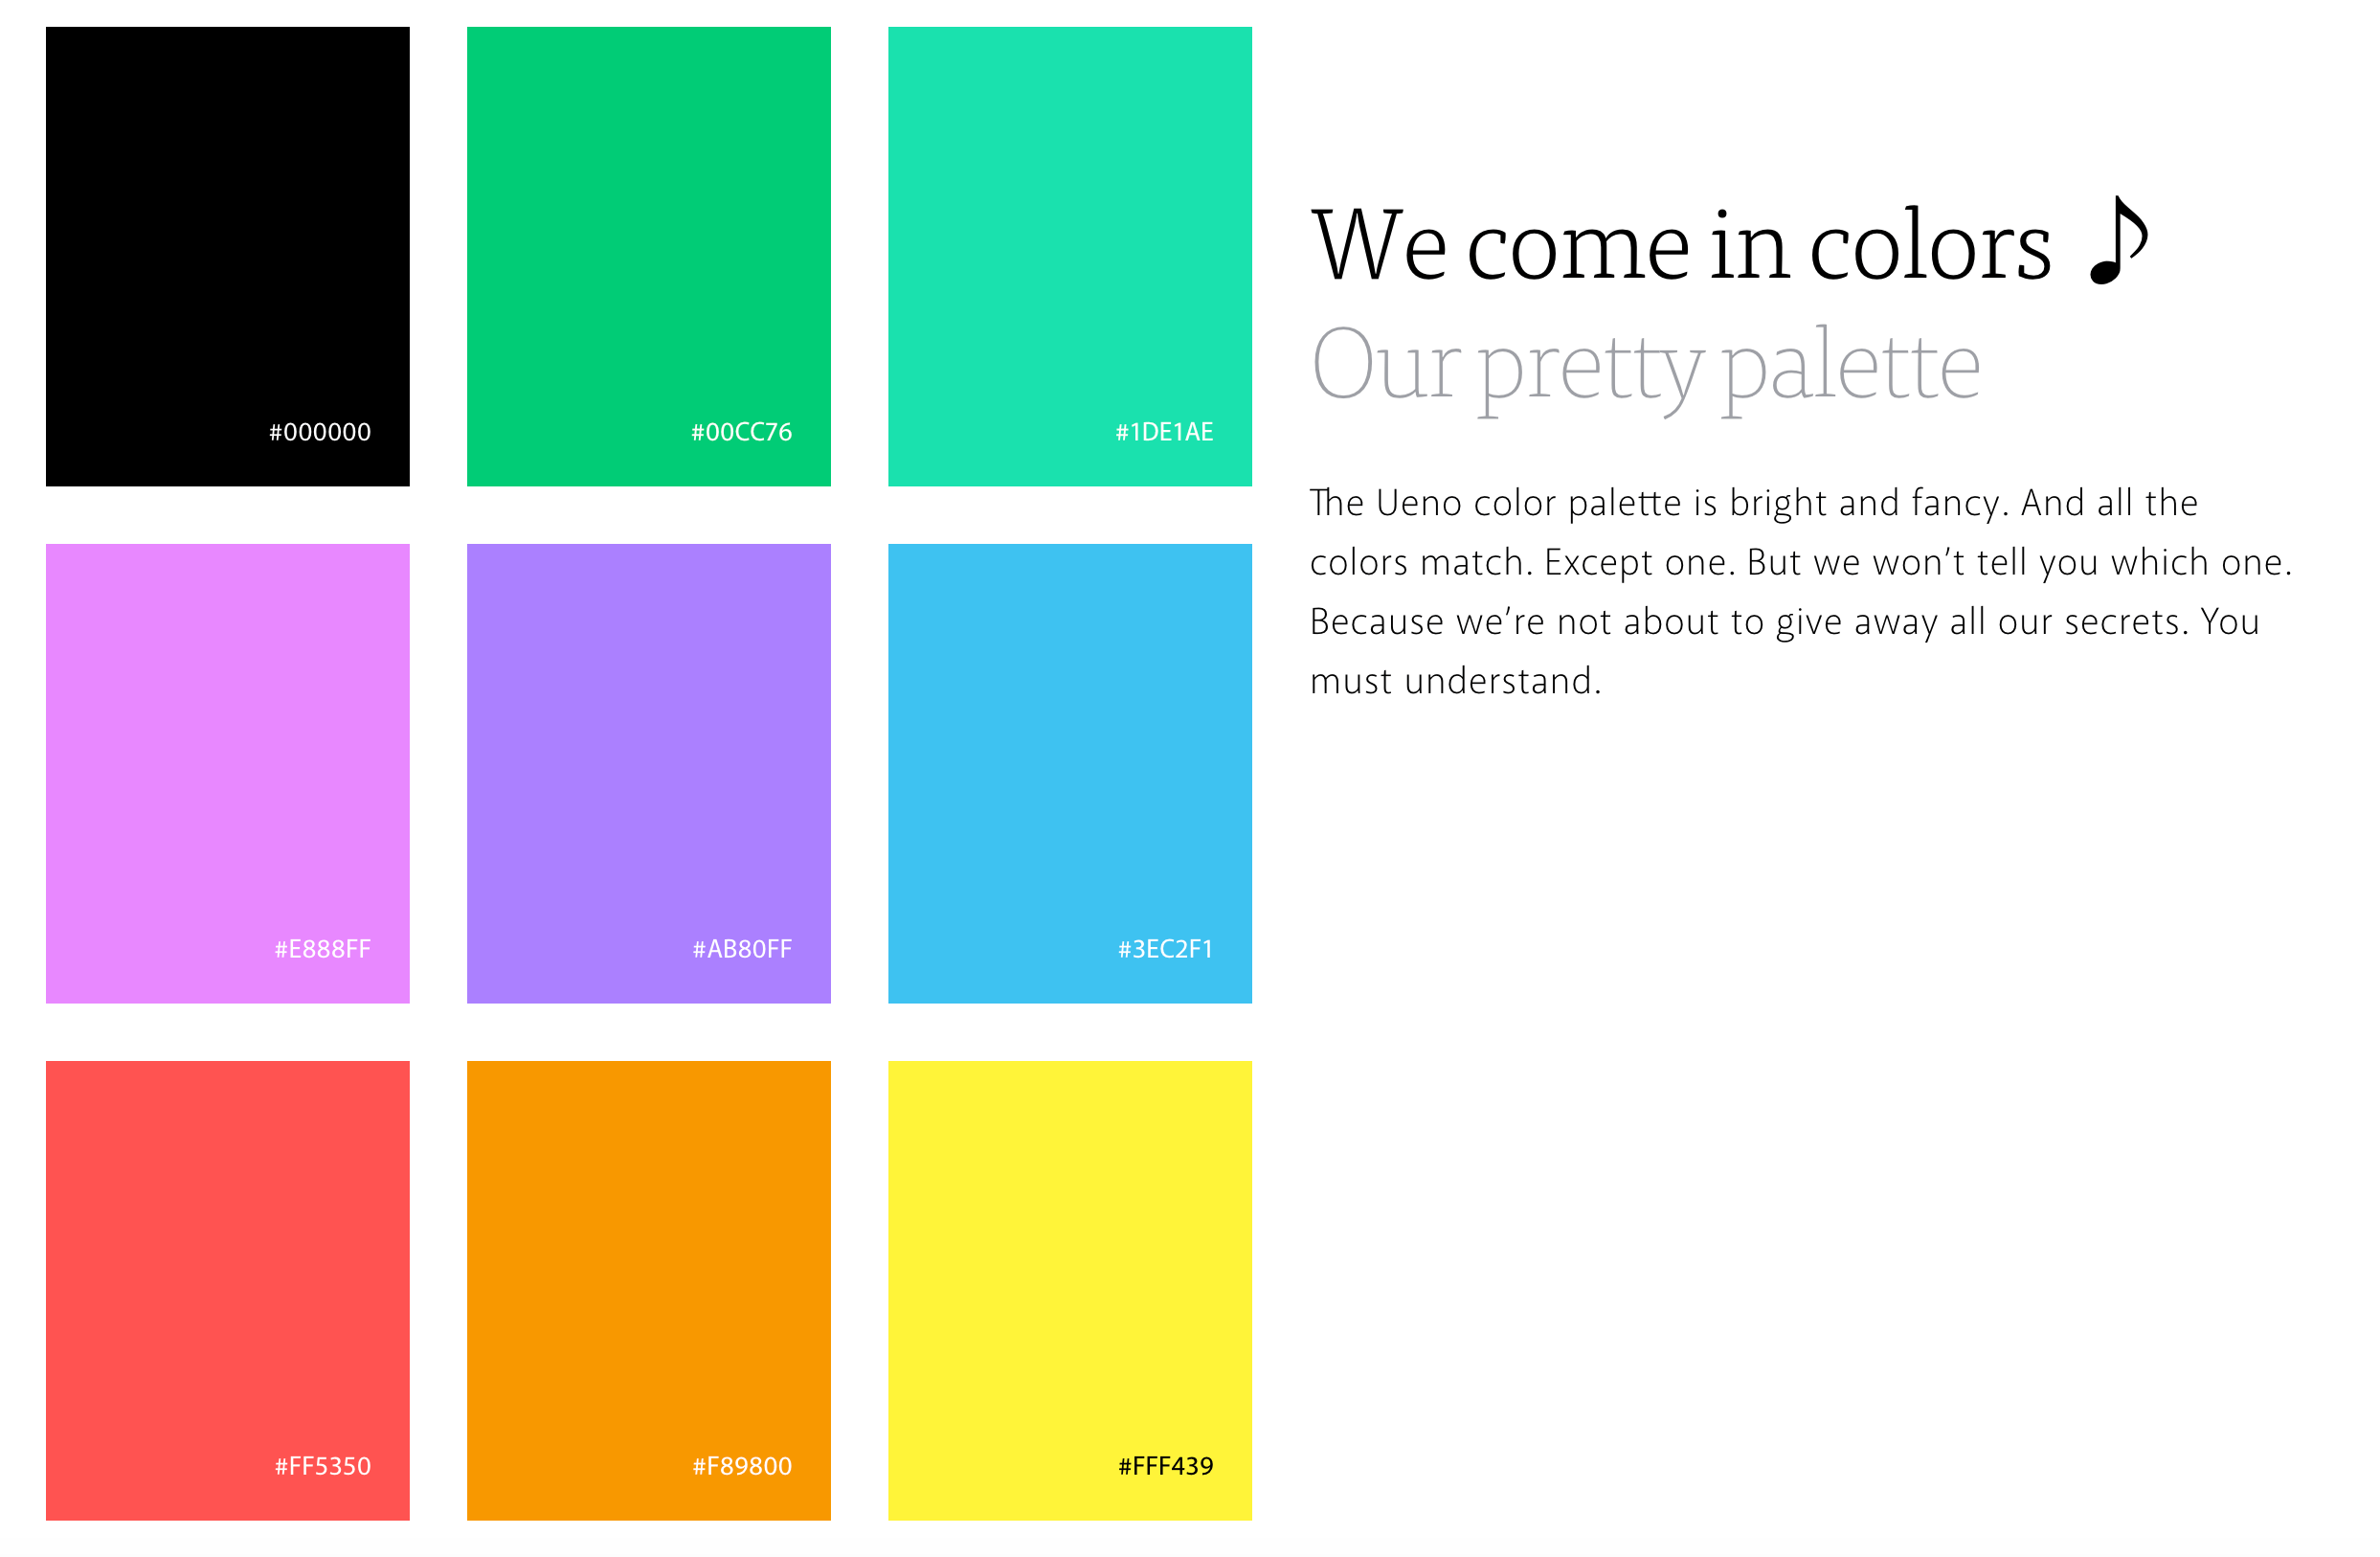 What Is The Pattern And Which Color Is The Odd One Out